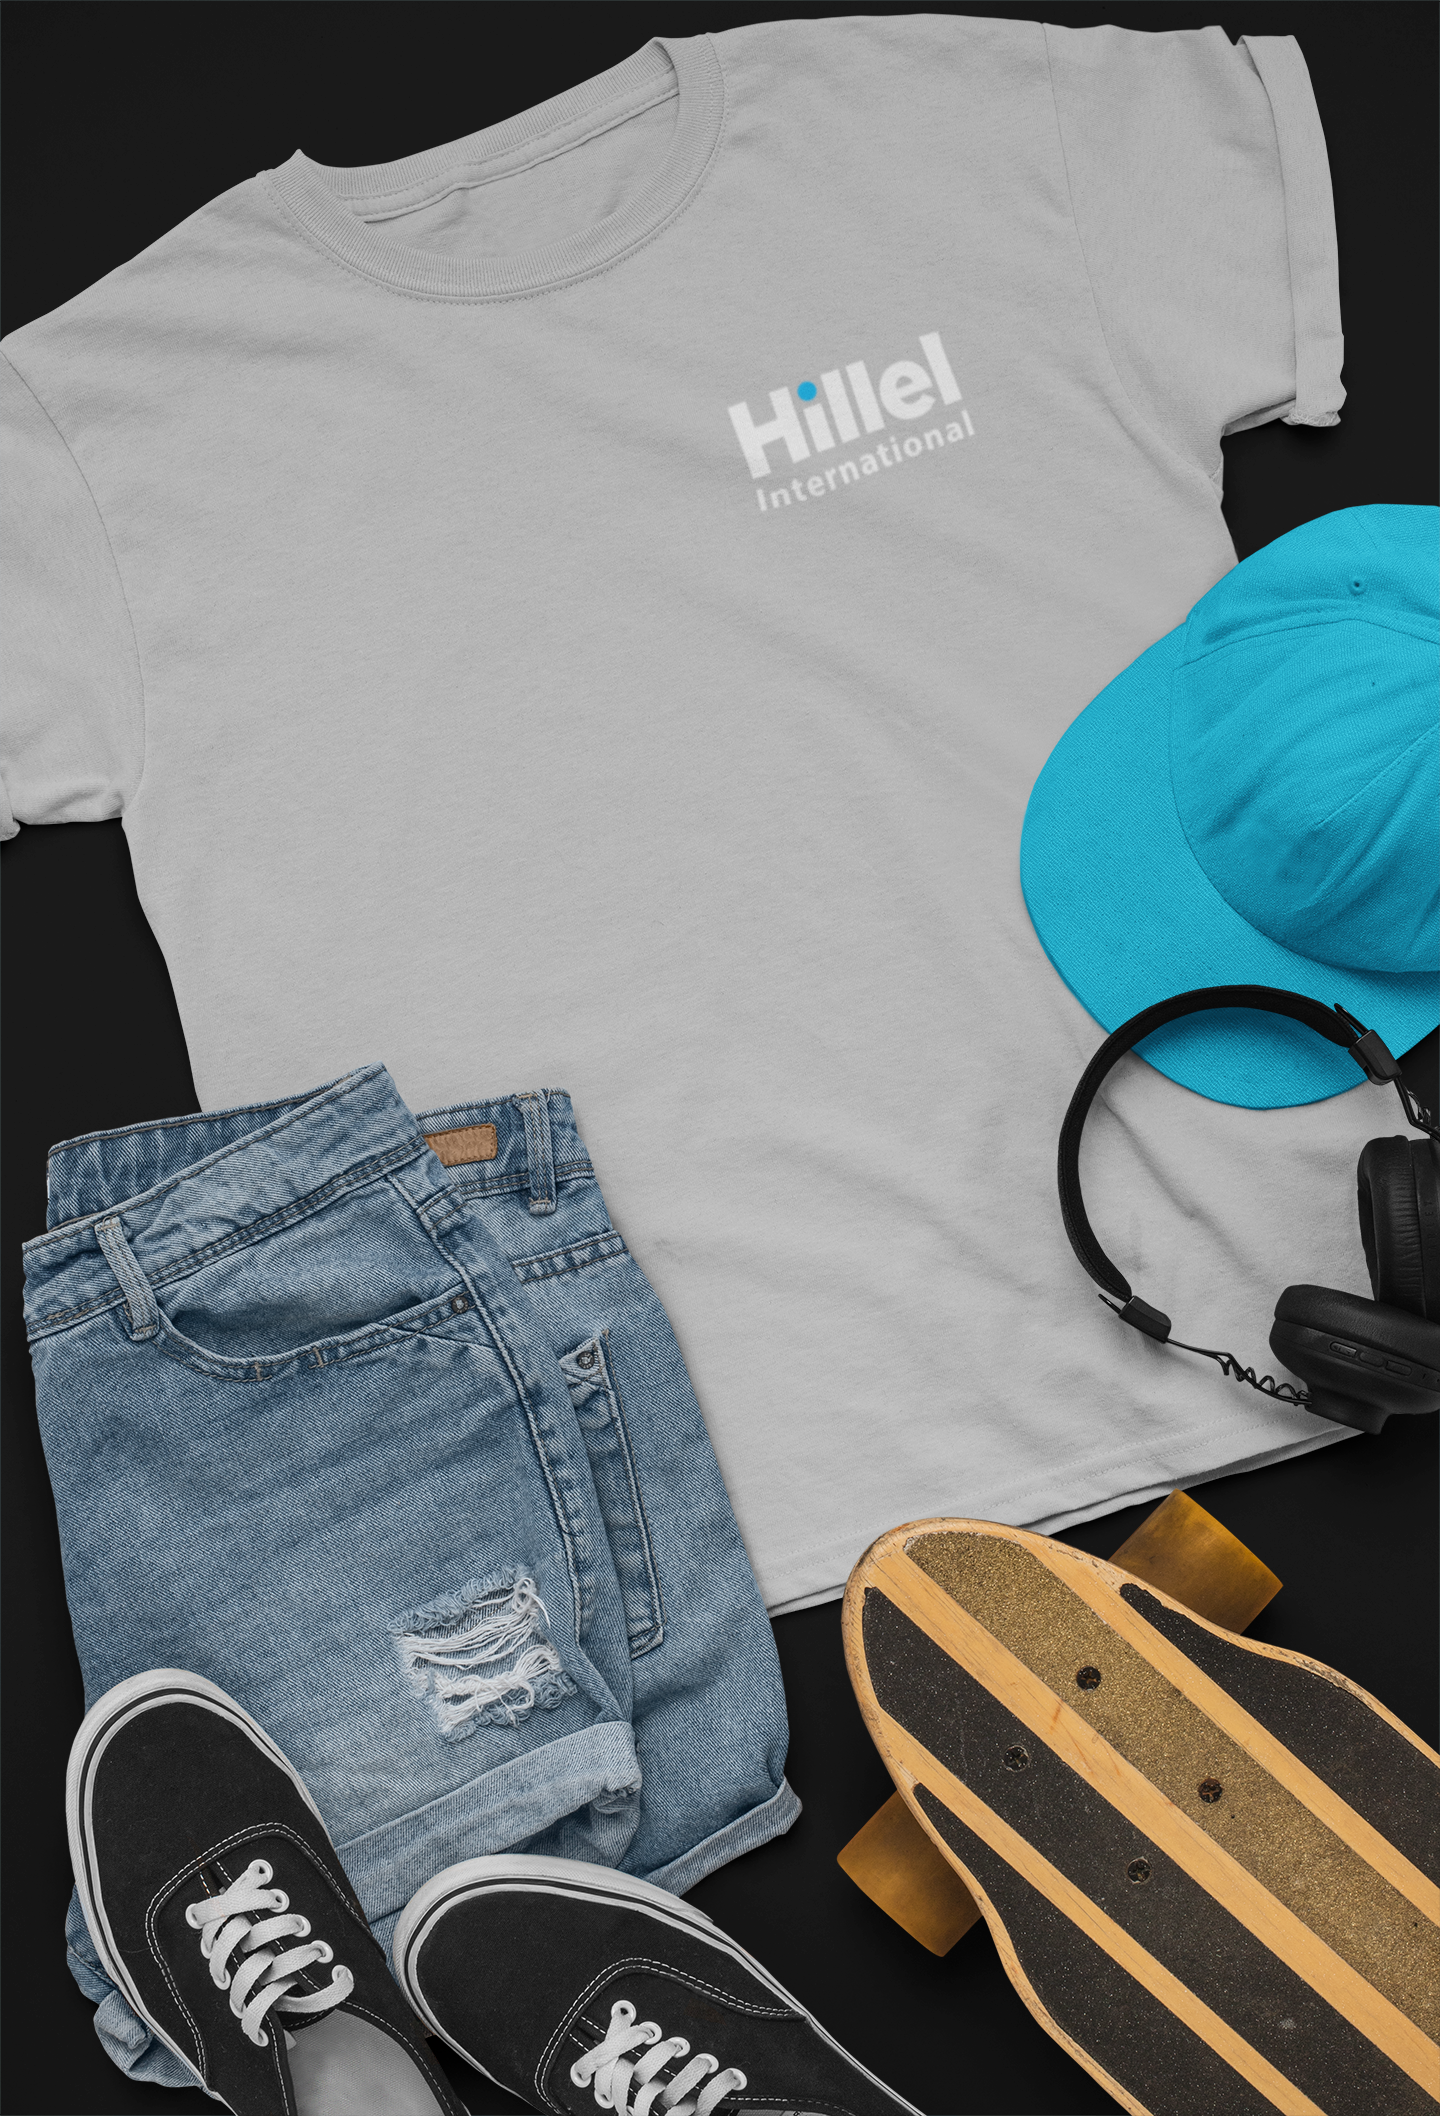 flat-lay-t-shirt-mockup-featuring-a-casual-skater-outfit-26344.png